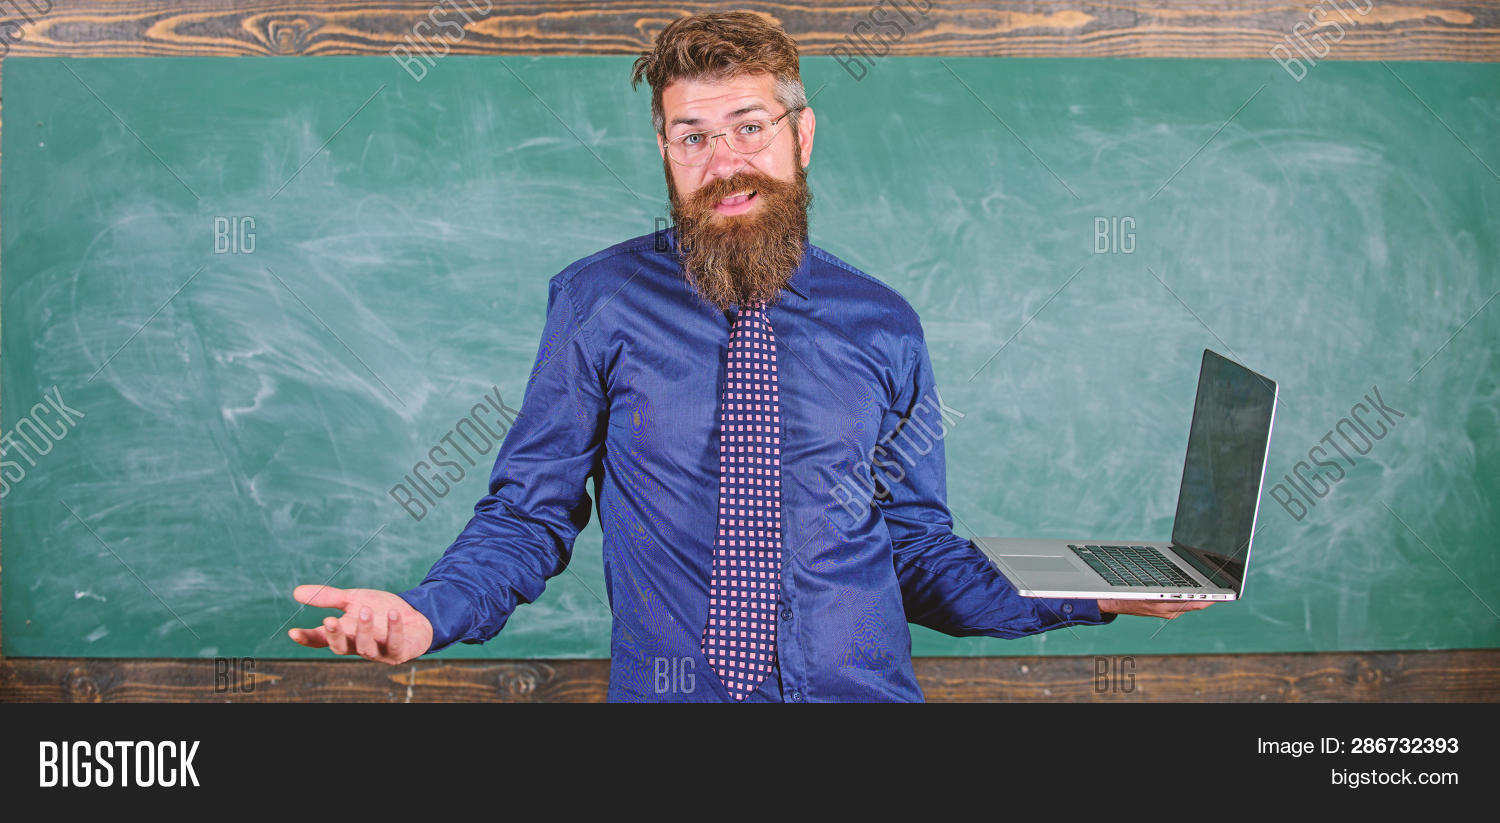 Teaching issues using modern technologies. Hipster teacher confused expression holds laptop. Teacher bearded man confused work with modern laptop chalkboard background. Distance education issues